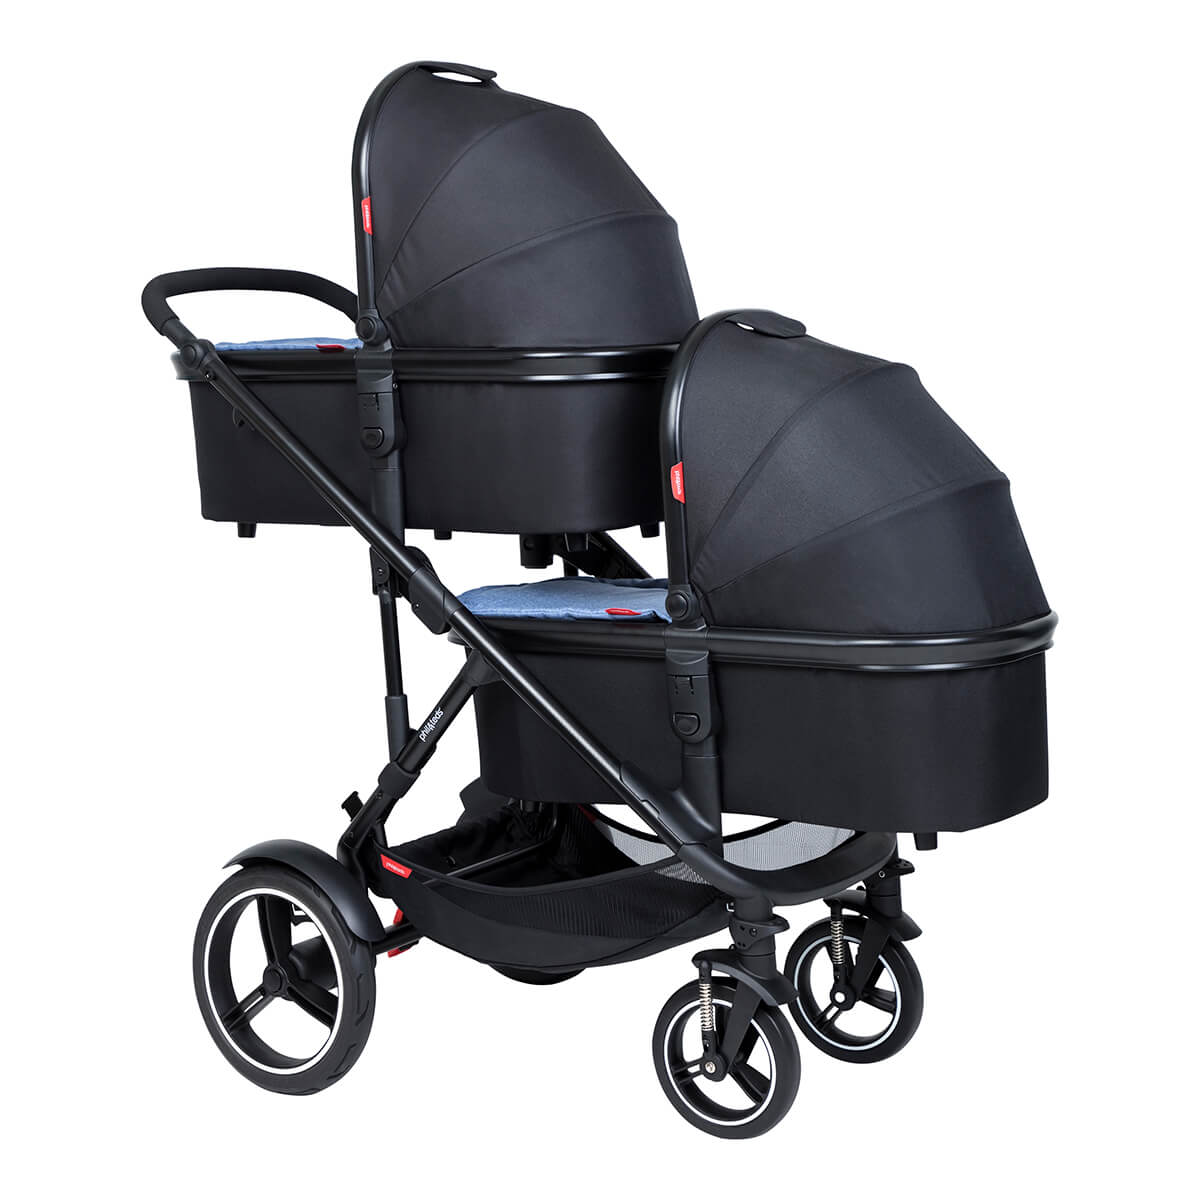 https://cdn.accentuate.io/4509867311201/19793940447402/philteds-voyager-inline-buggy-with-double-snug-carrycots-v1626485388504.jpg?1200x1200